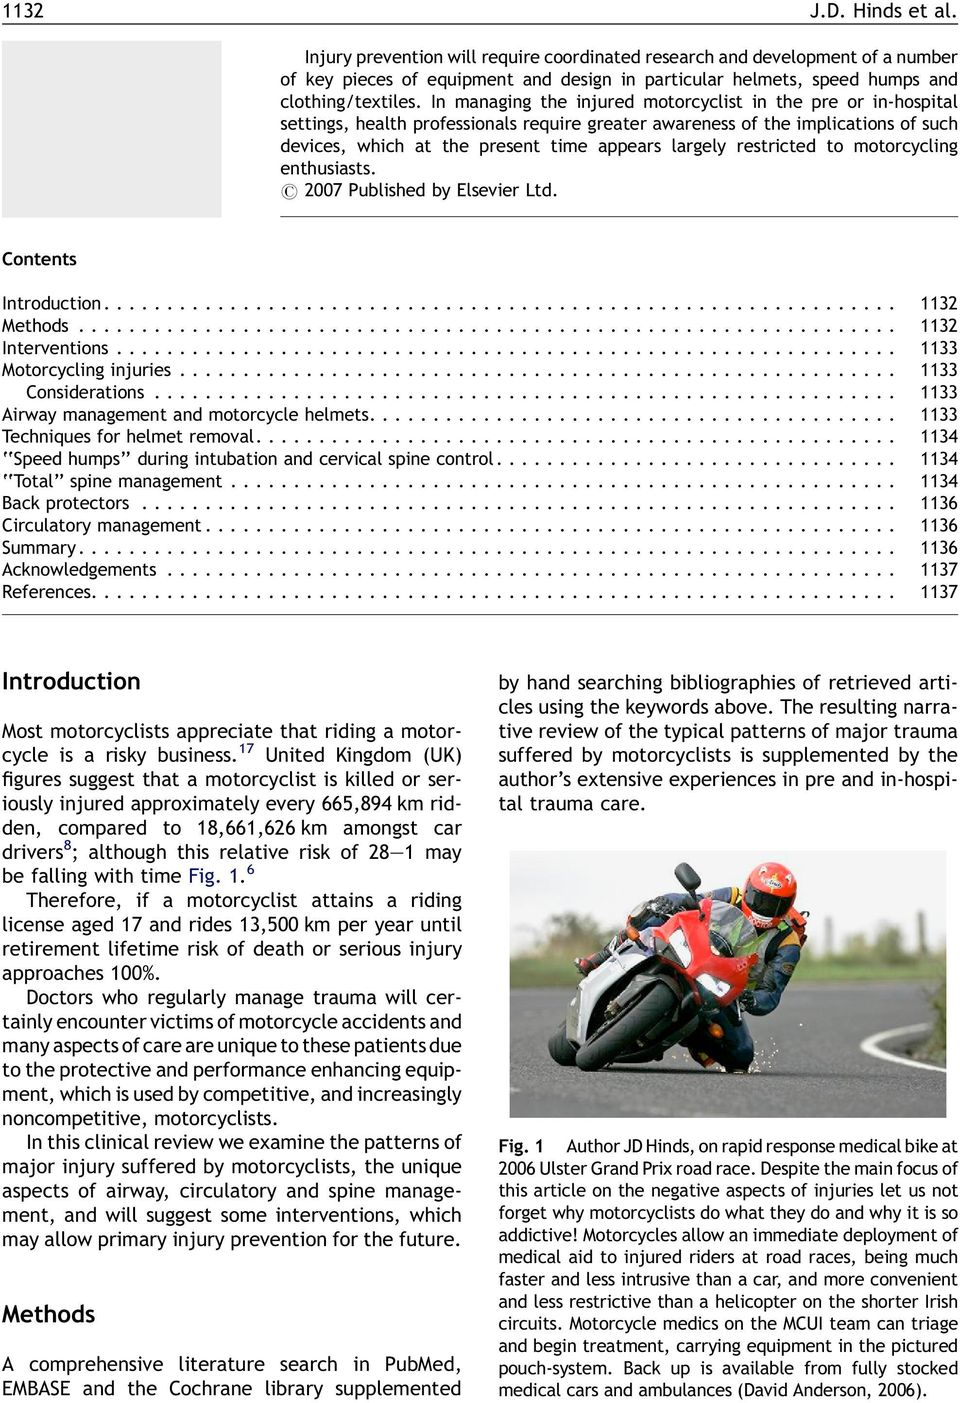 restricted to motorcycling enthusiasts. # 2007 Published by Elsevier Ltd. Contents Introduction............................................................... 1132 Methods................................................................. 1132 Interventions.